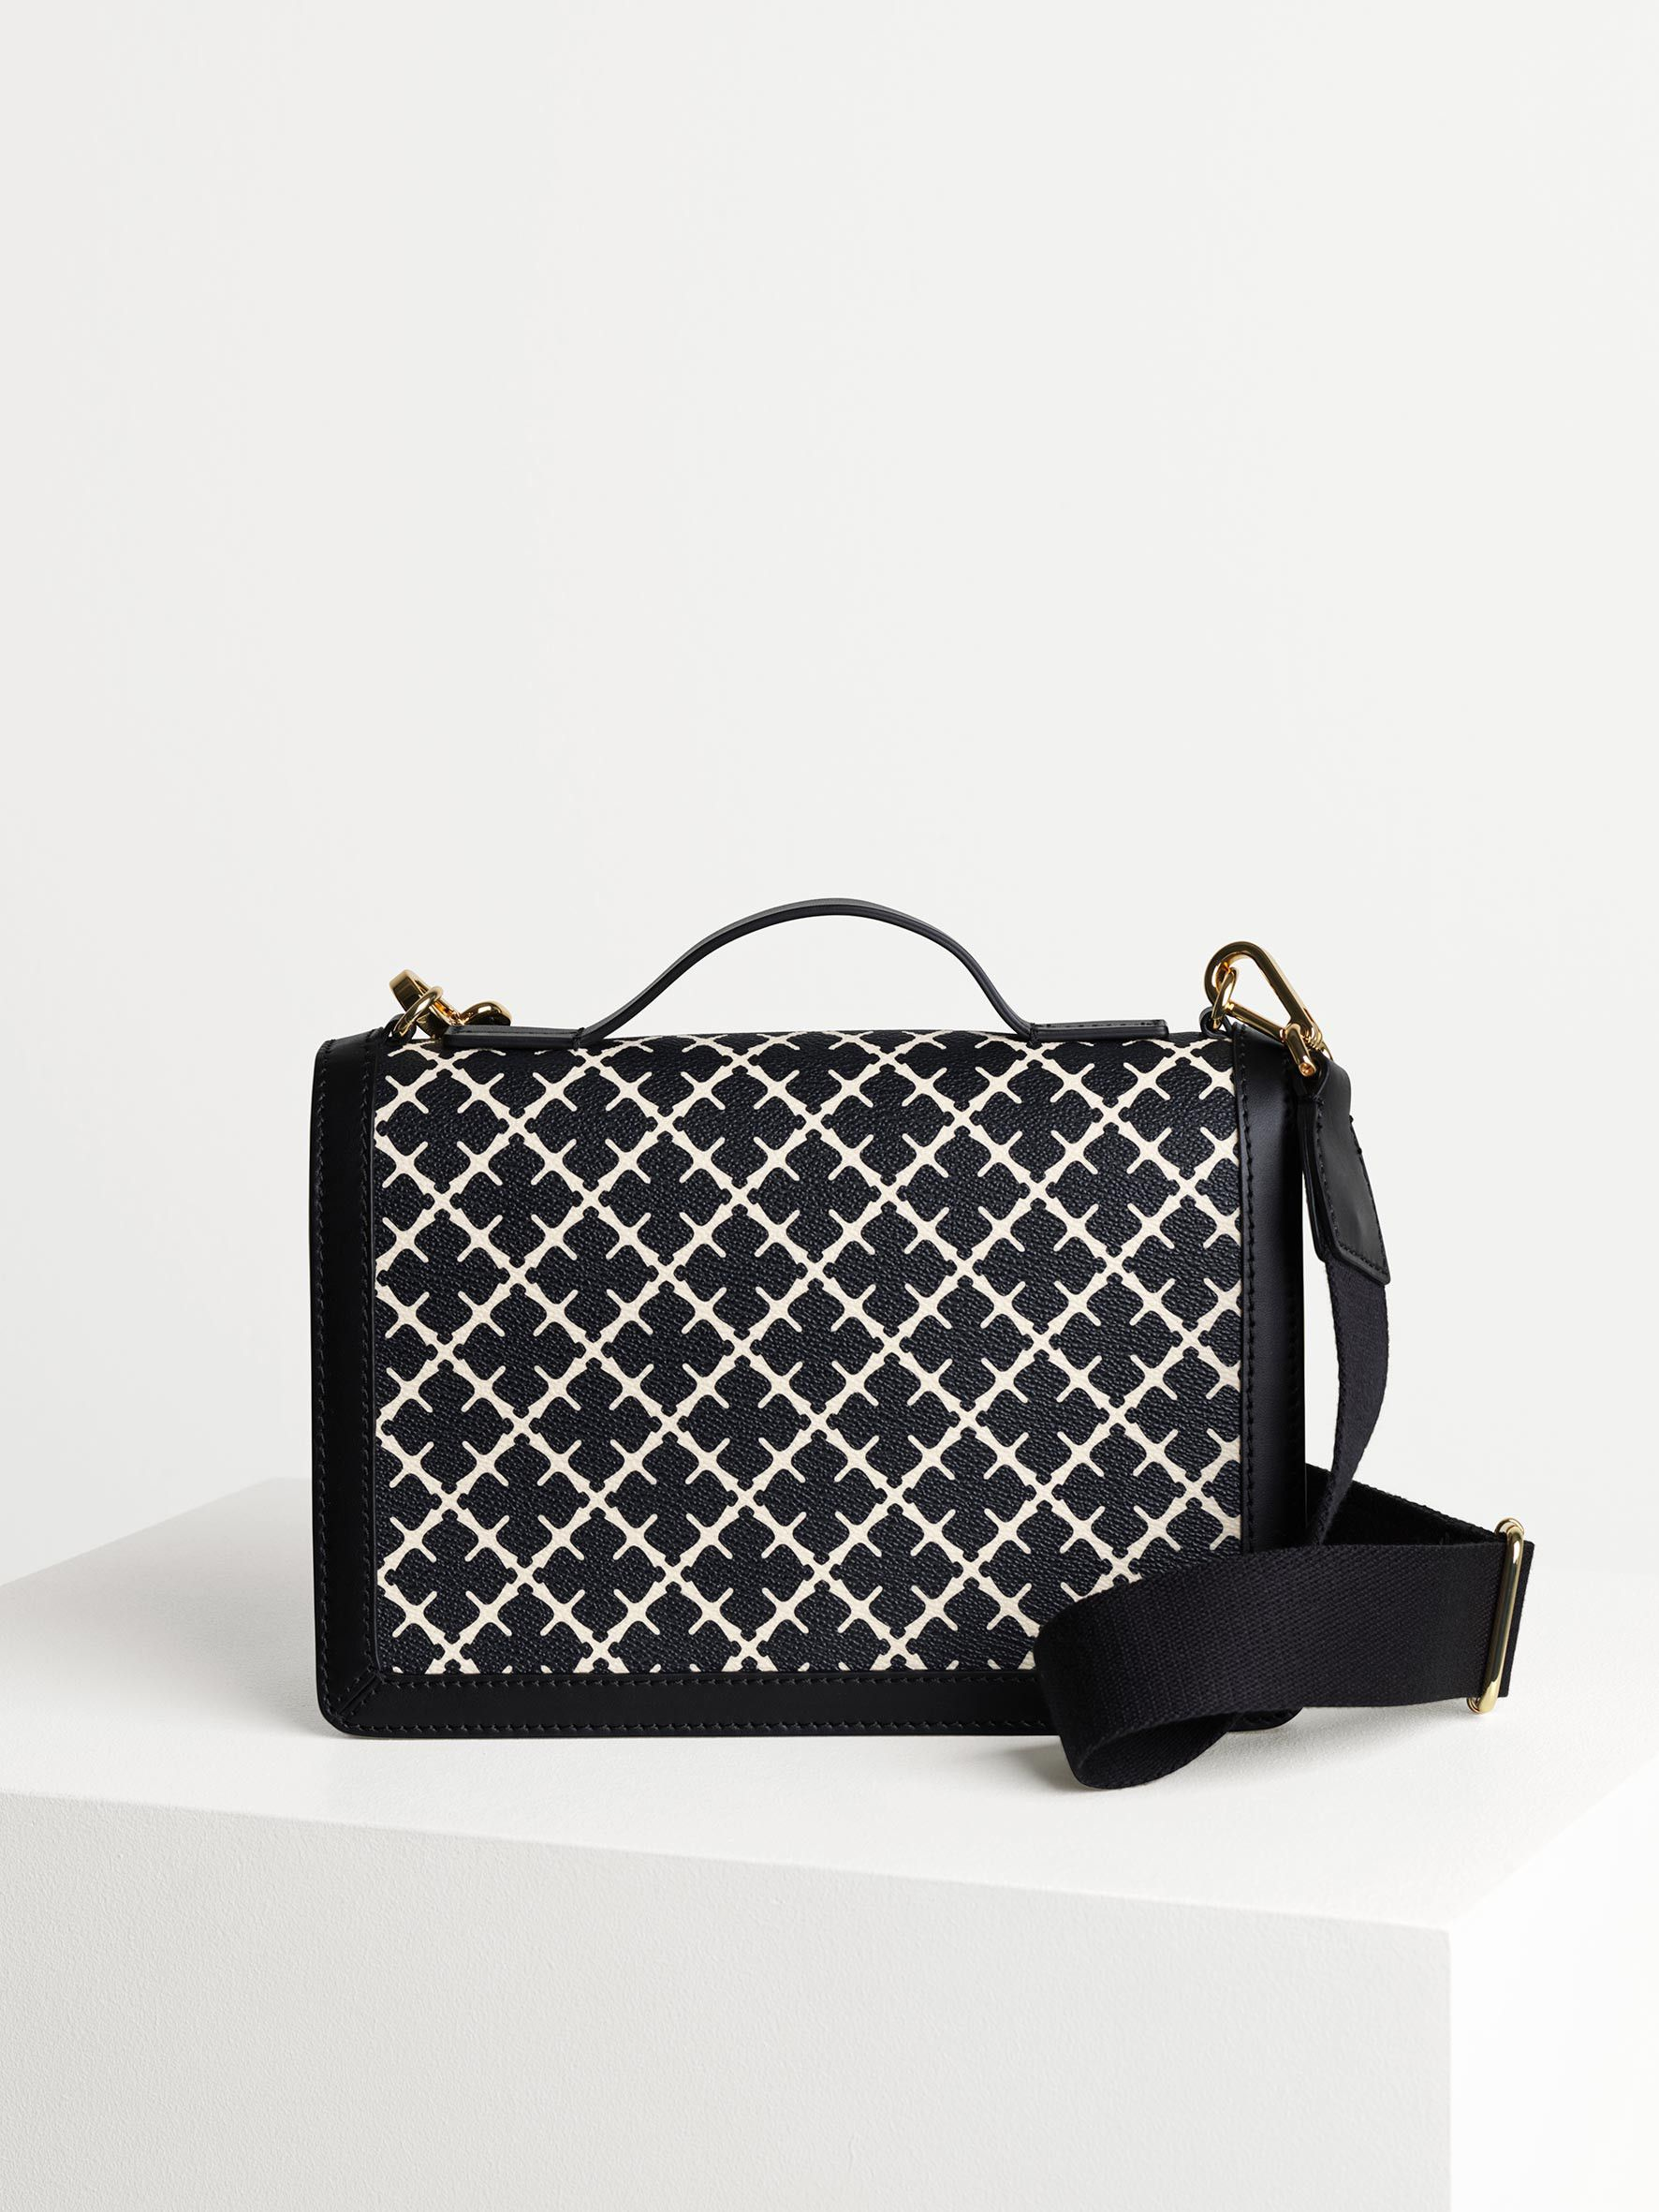 This Compact Yet Practical Cross Body Bag Features A Detachable Shoulder Strap In Sporty Cotton Webbing And A Leather Top H Bags Malene Birger Bag Shoulder Bag